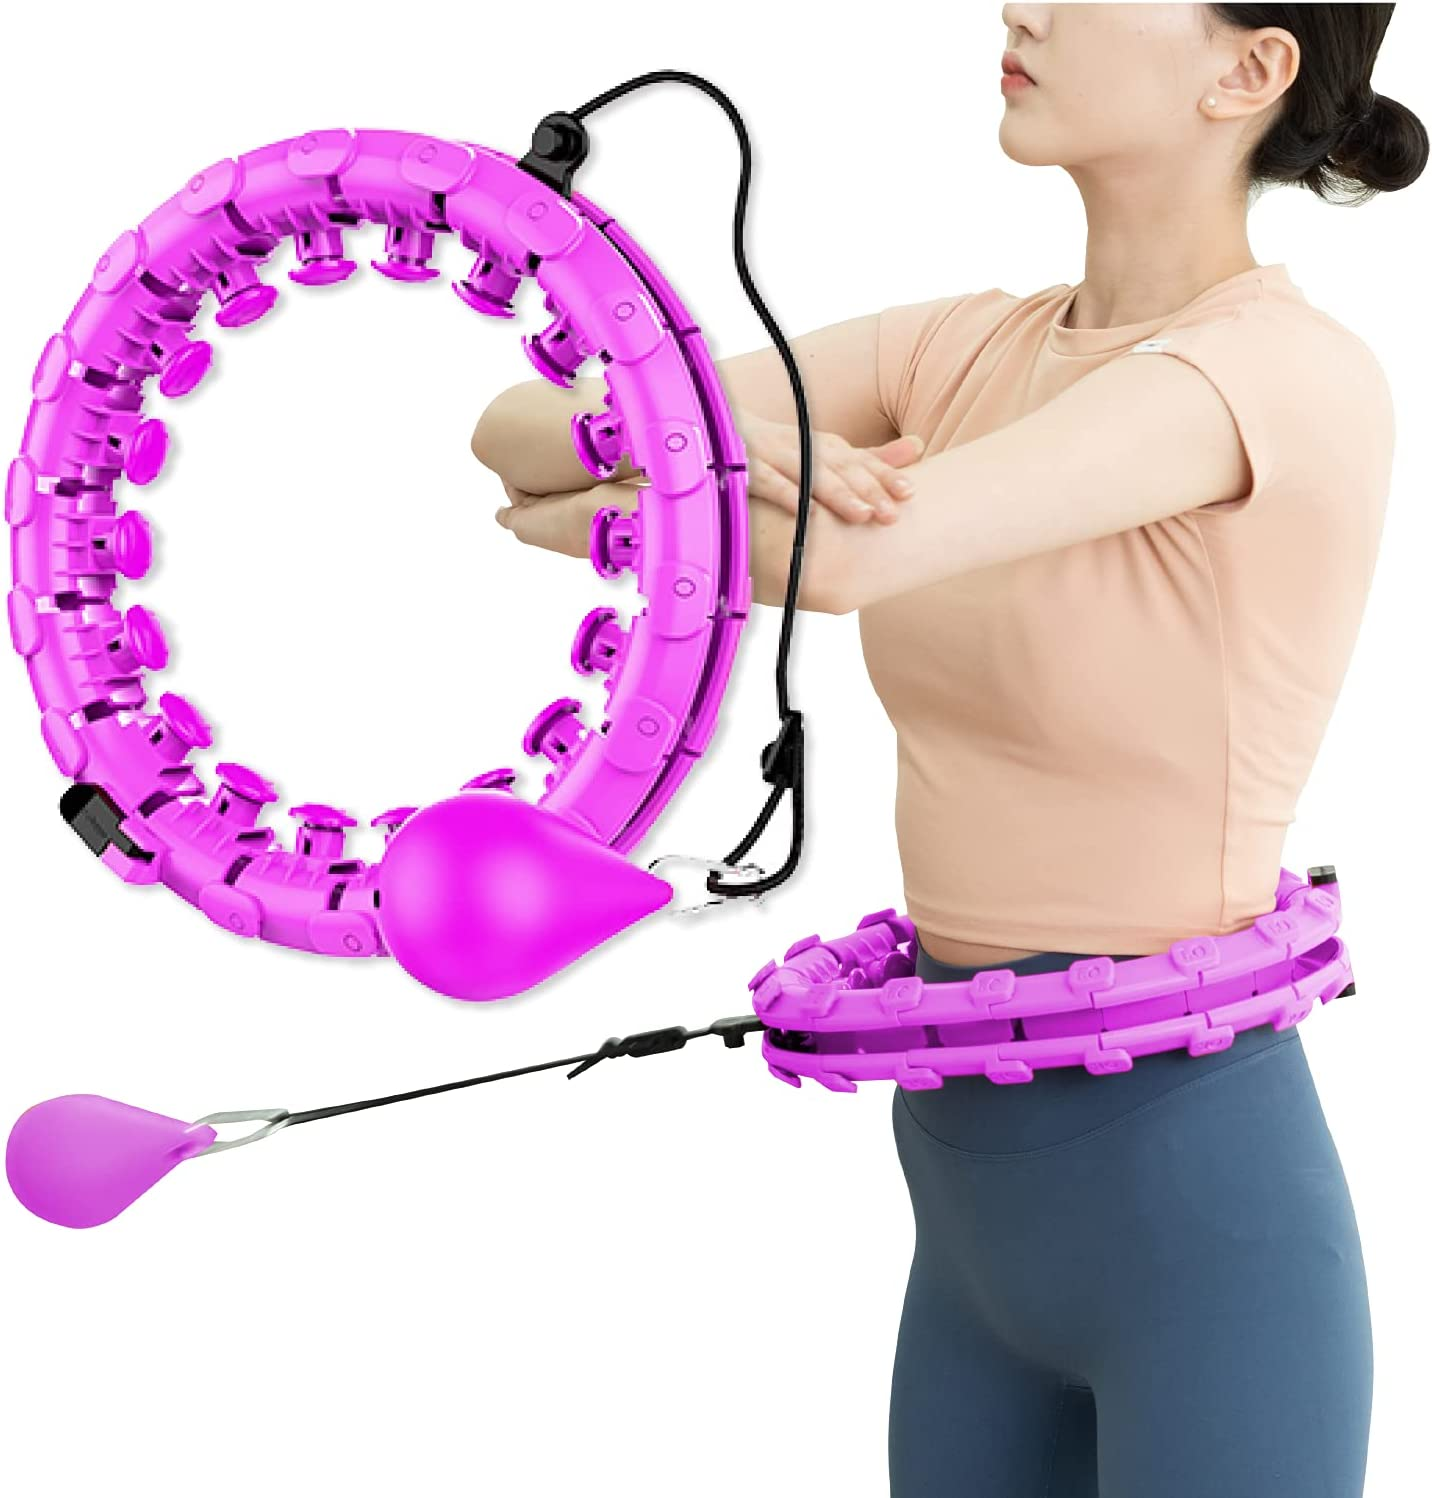 Smart Weighted Hoola Hoop - OFFicial shop 2 Abdomen in Mass 1 New arrival Fitness